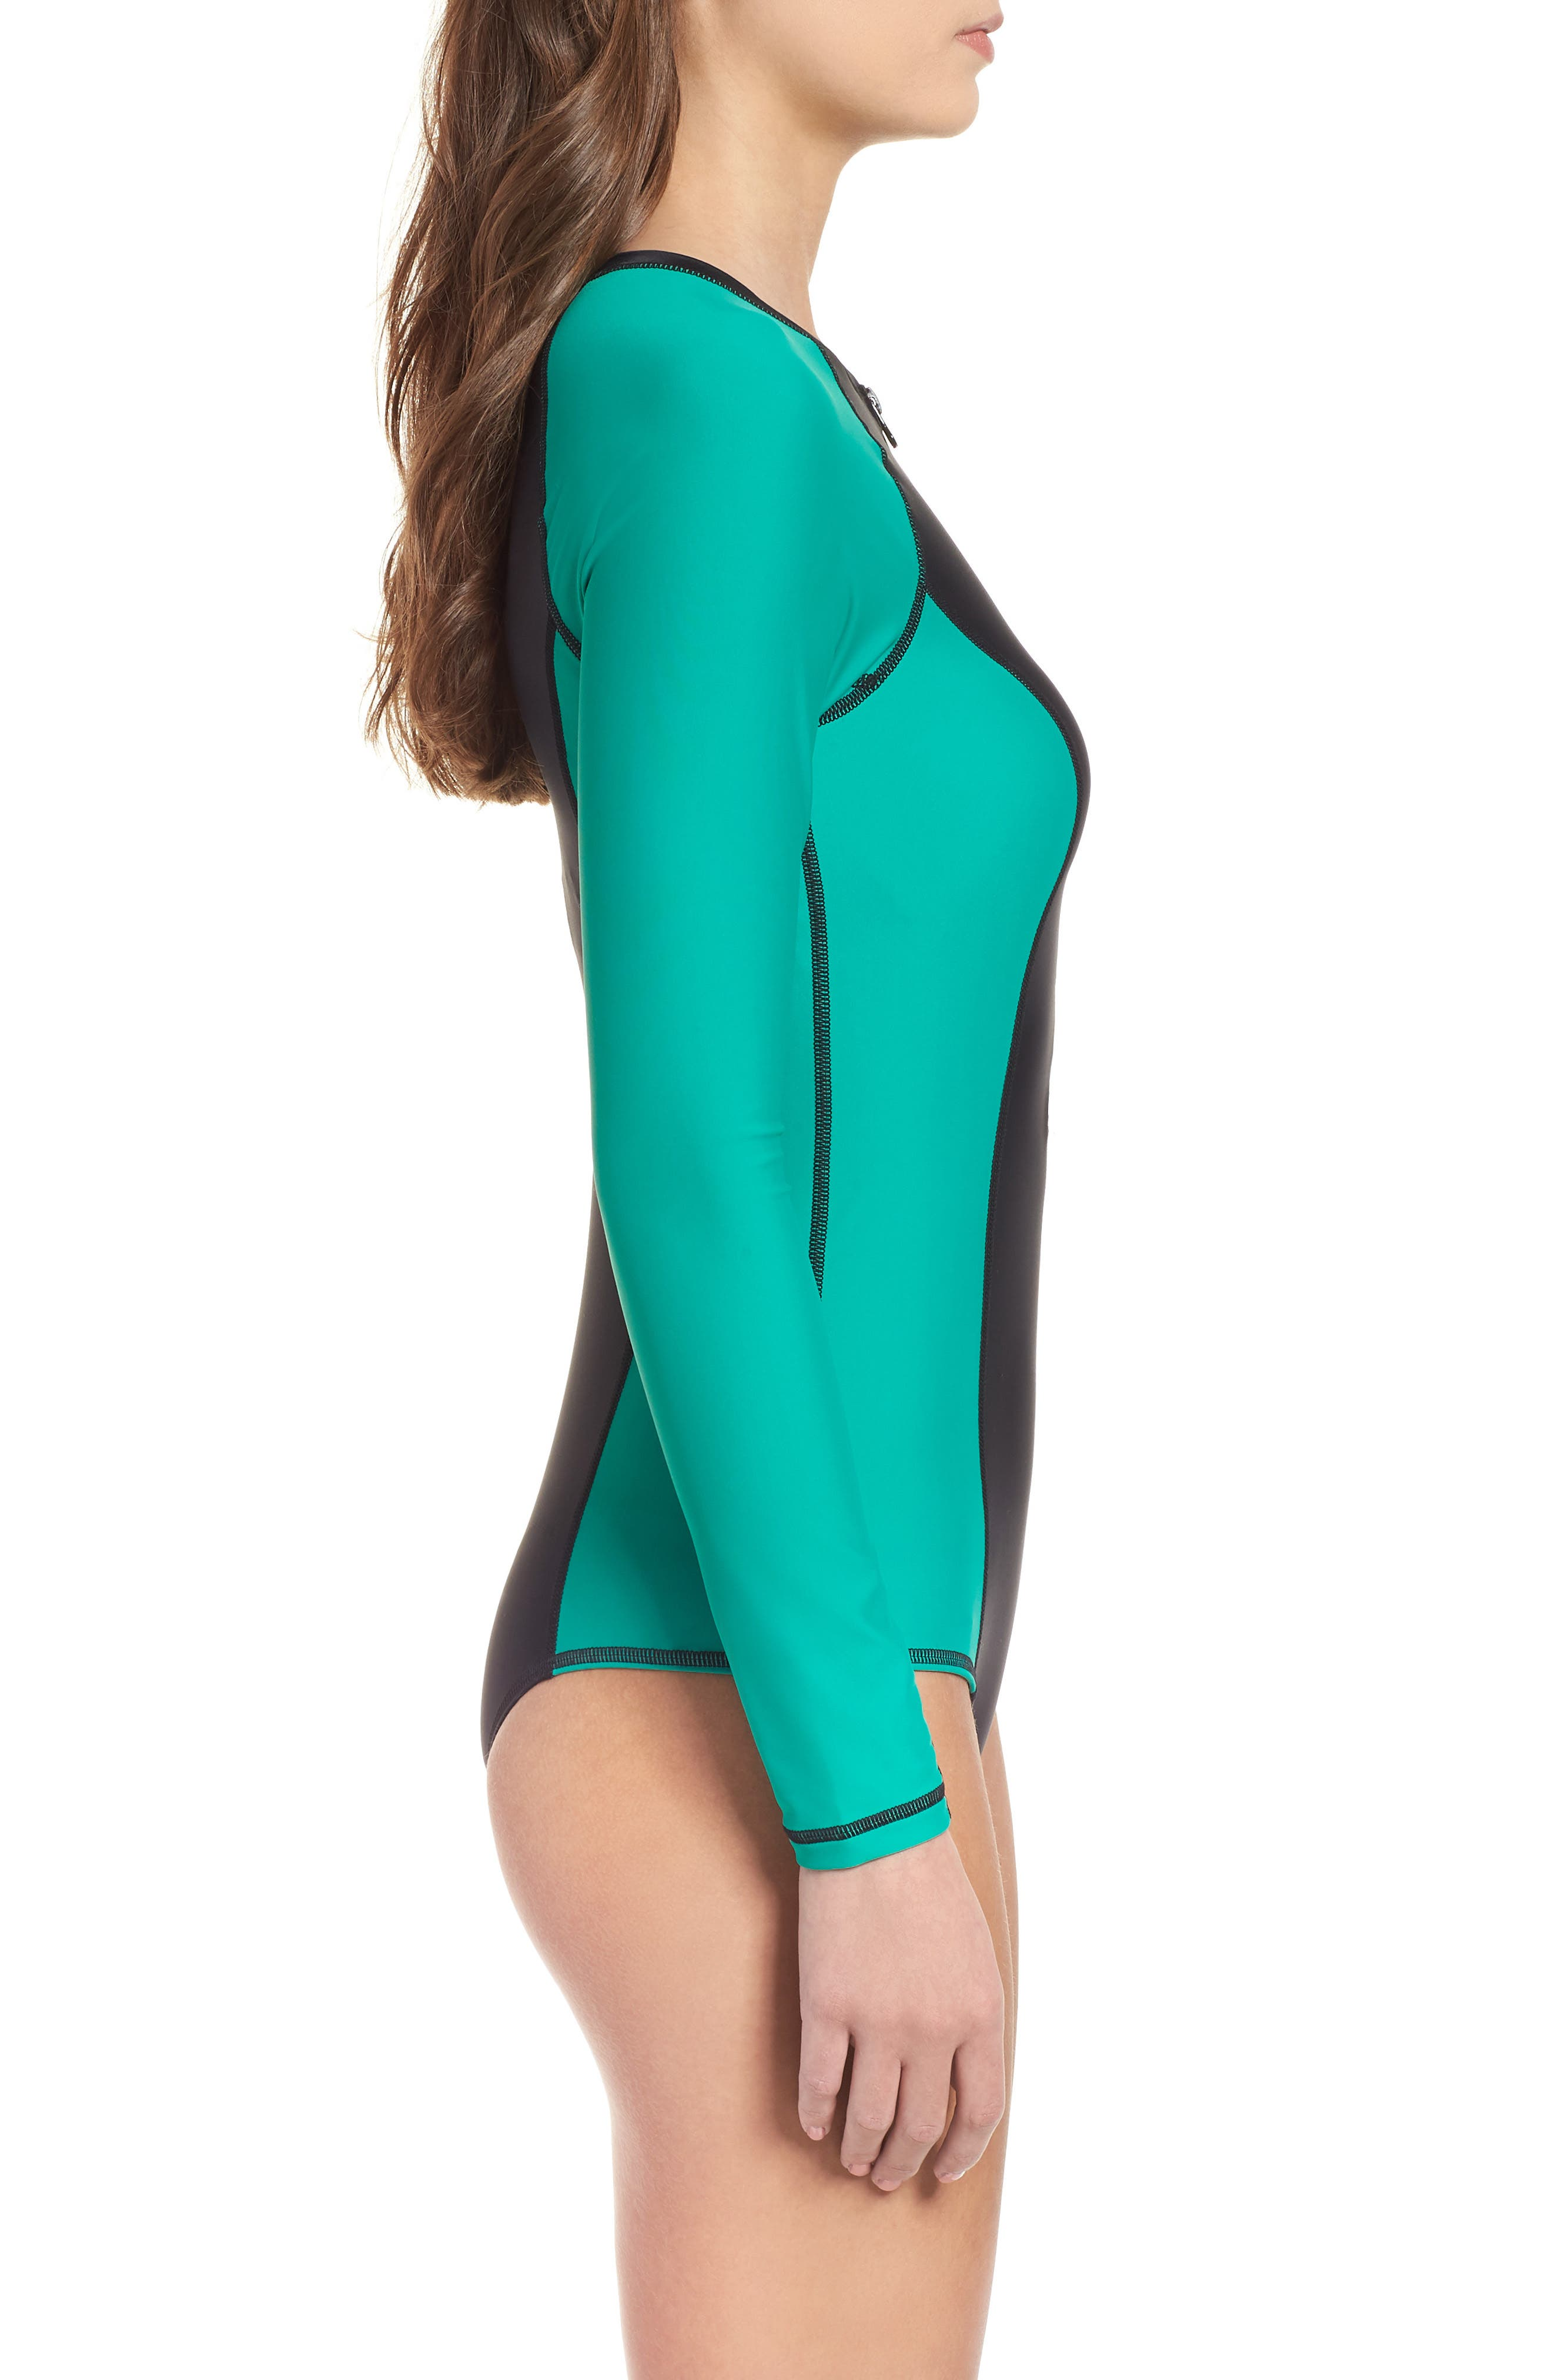 Simply Solid Long Sleeve One-Piece Swimsuit,                             Alternate thumbnail 3, color,                             307